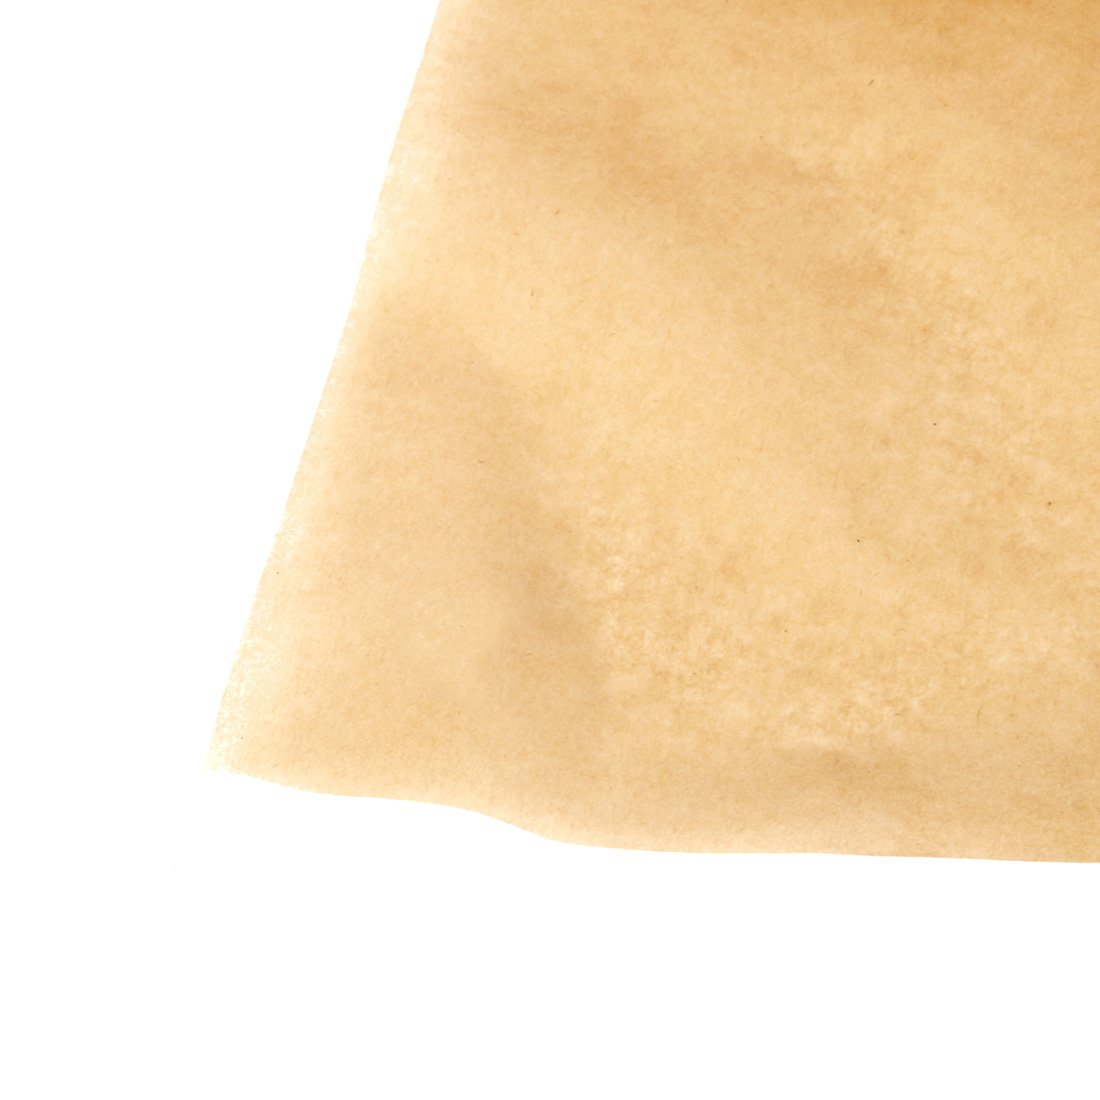 RAW Unrefined Parchment Paper Roll 400mm x 15m by RAW